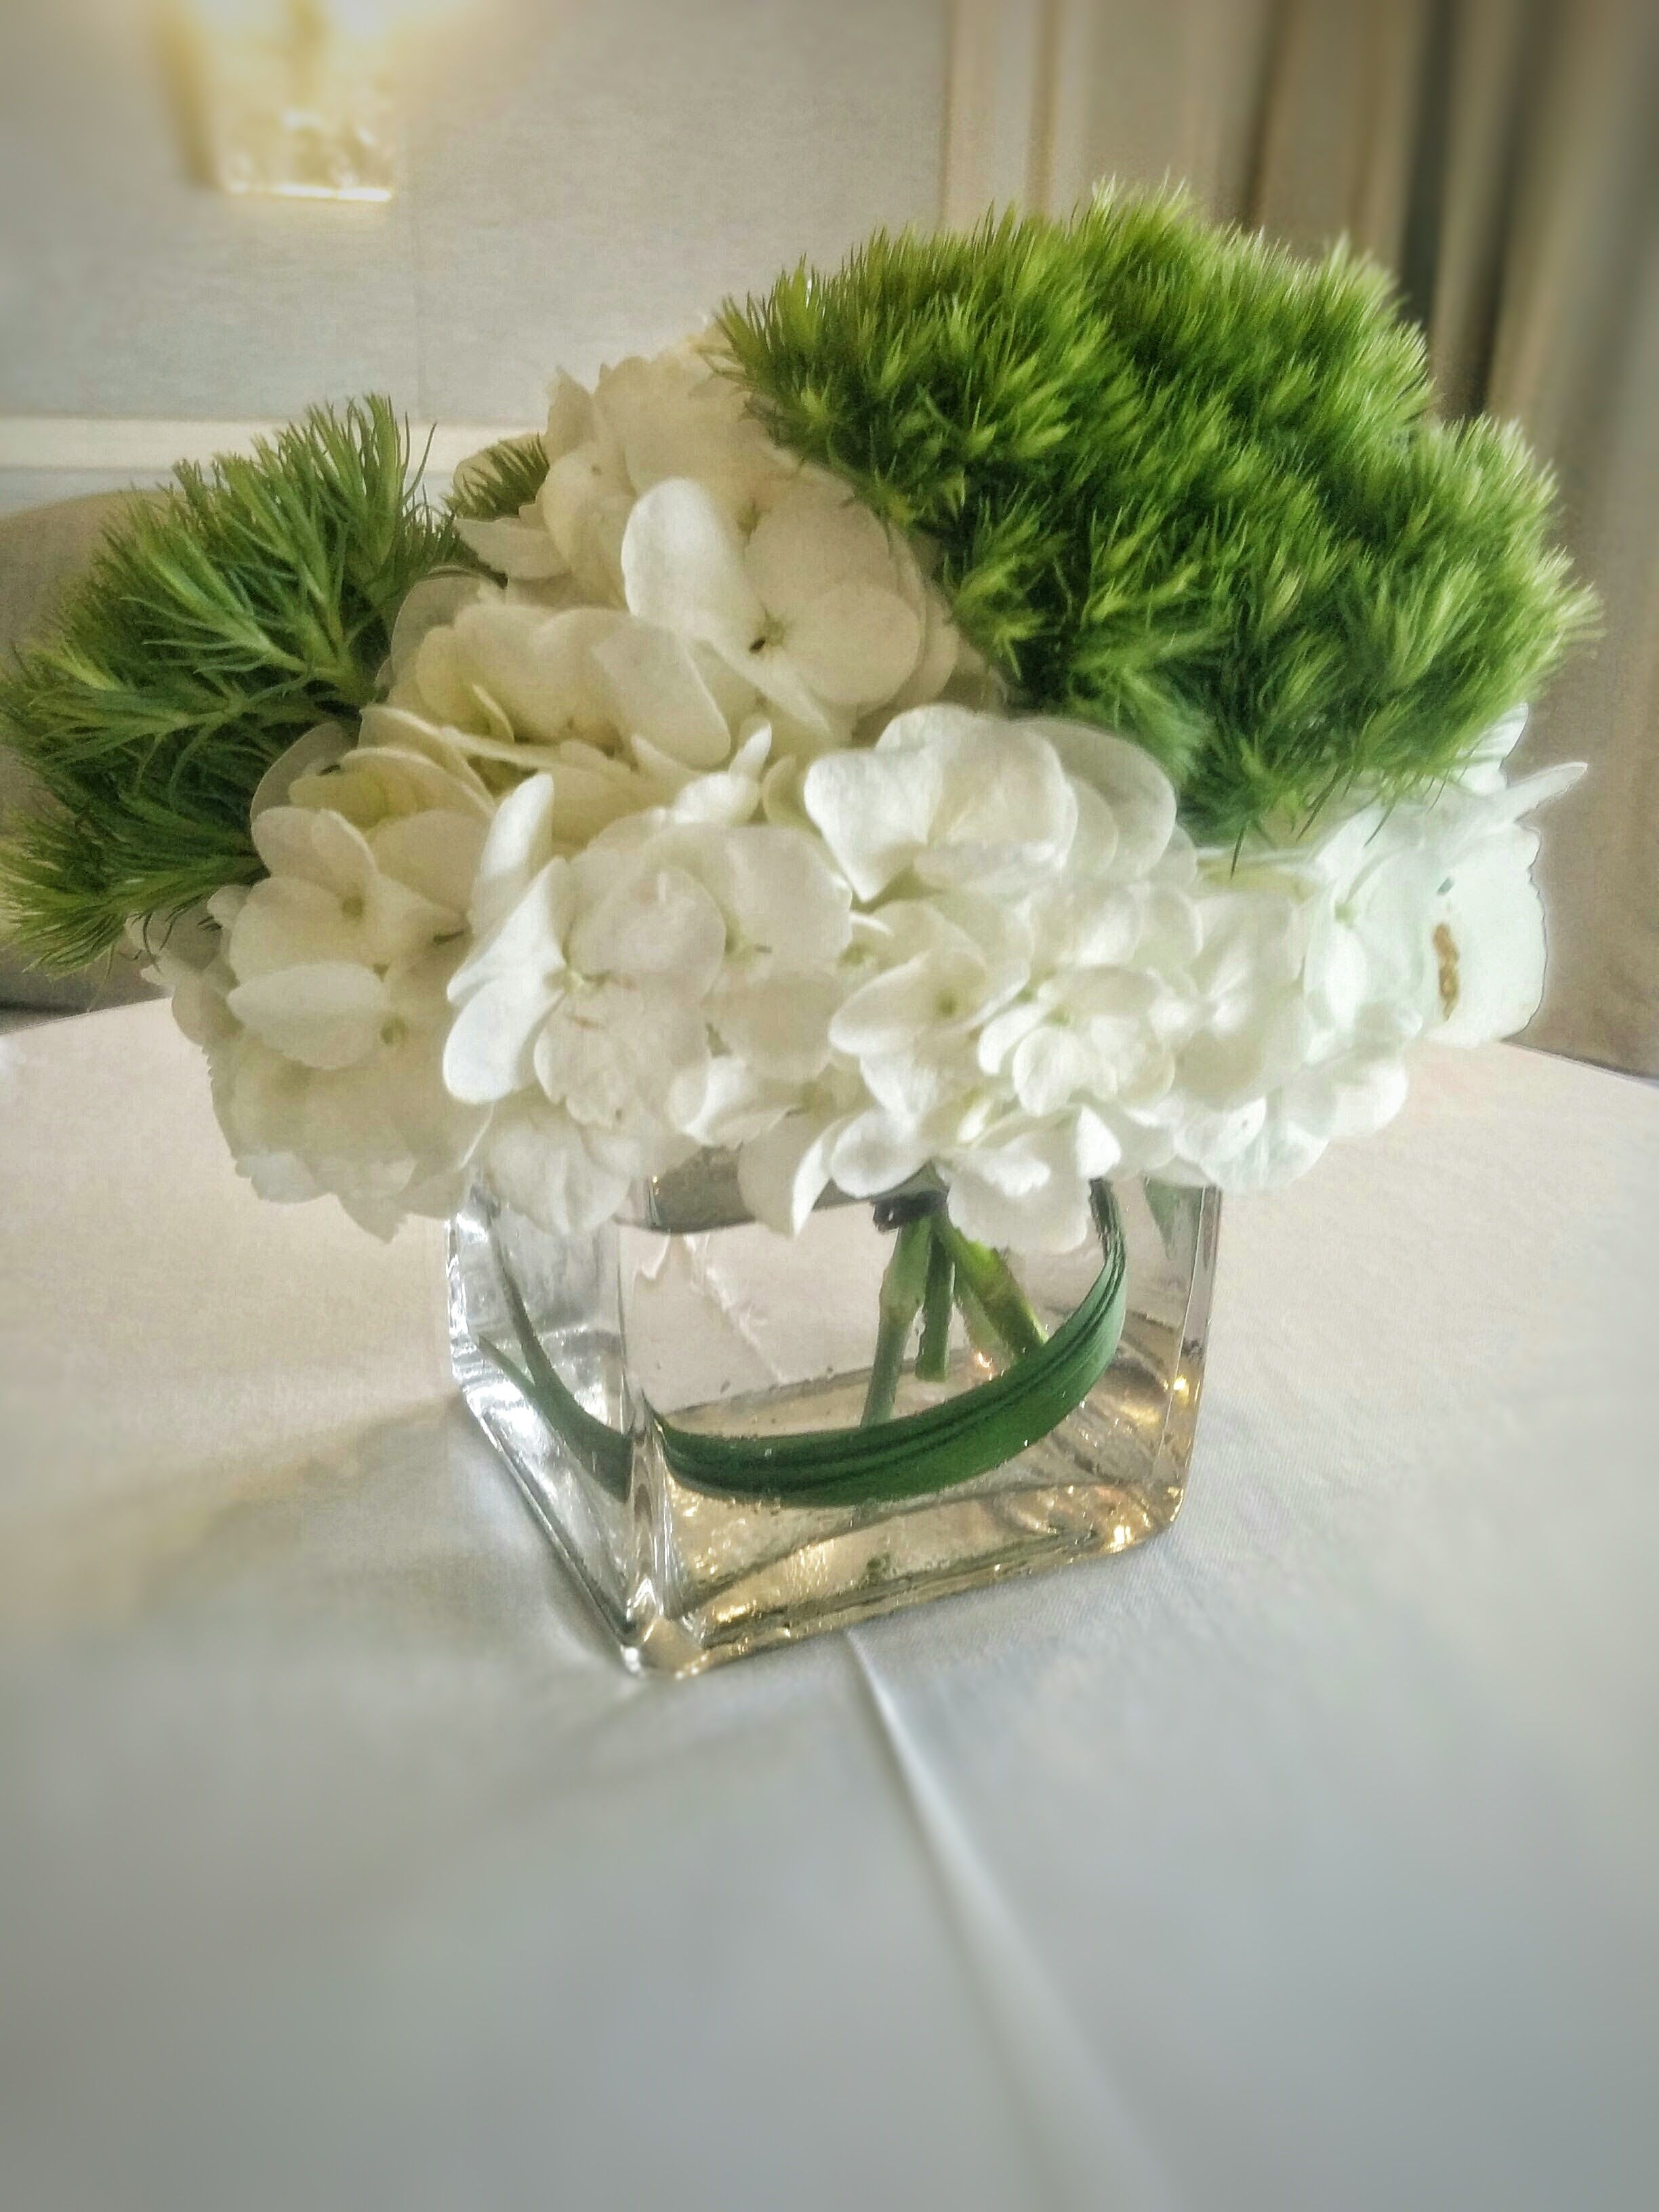 Square glass vase with white hydrangeas and green trick floral square glass vase with white hydrangeas and green trick reviewsmspy